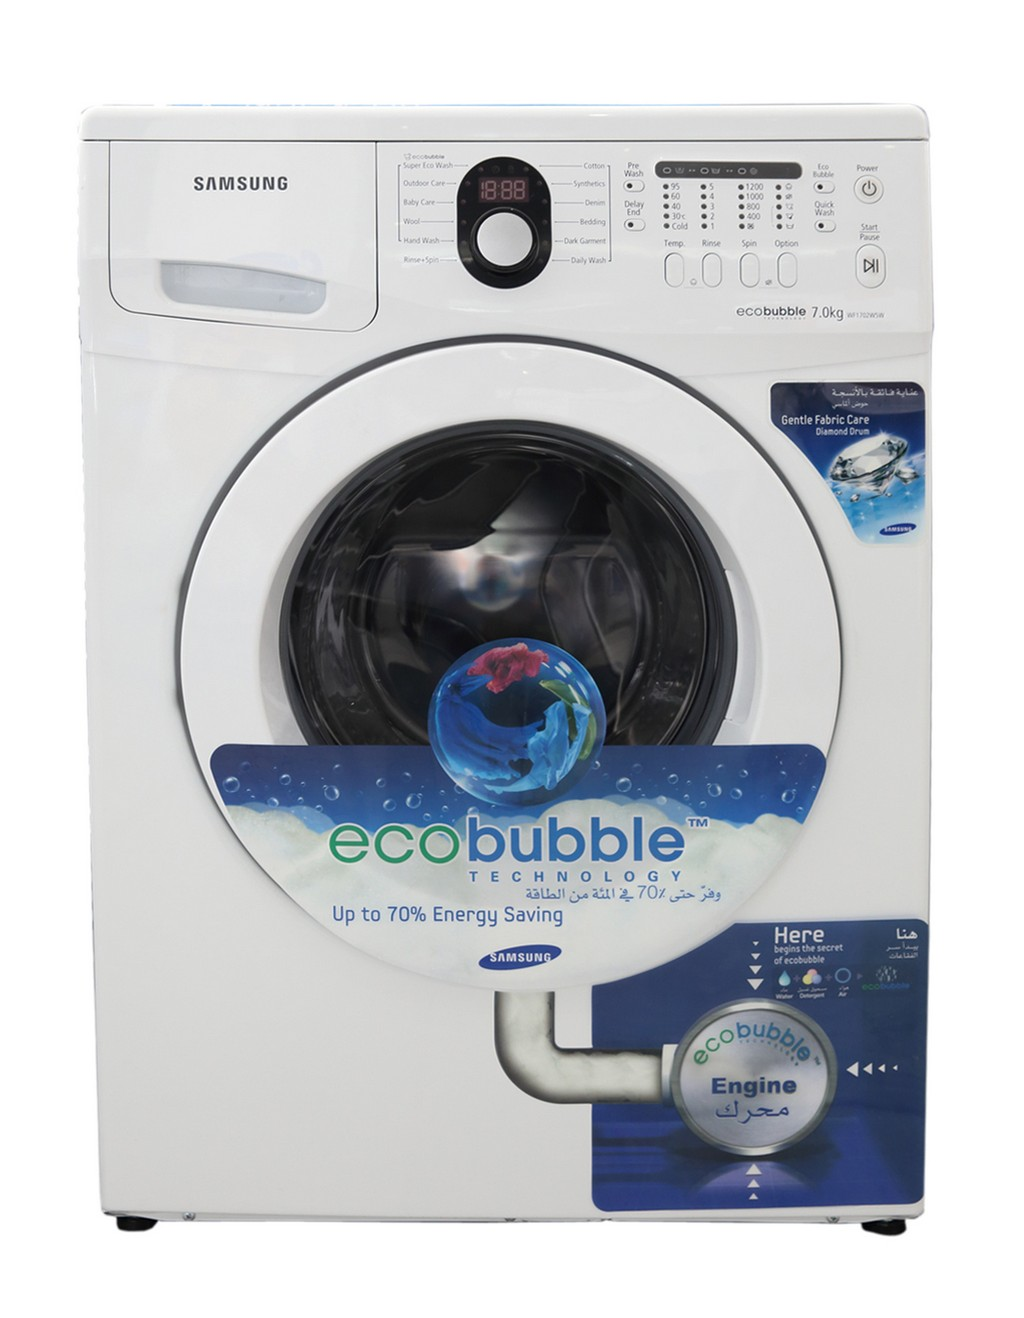 samsung washer, godrej washing machine, zanussi washing machine